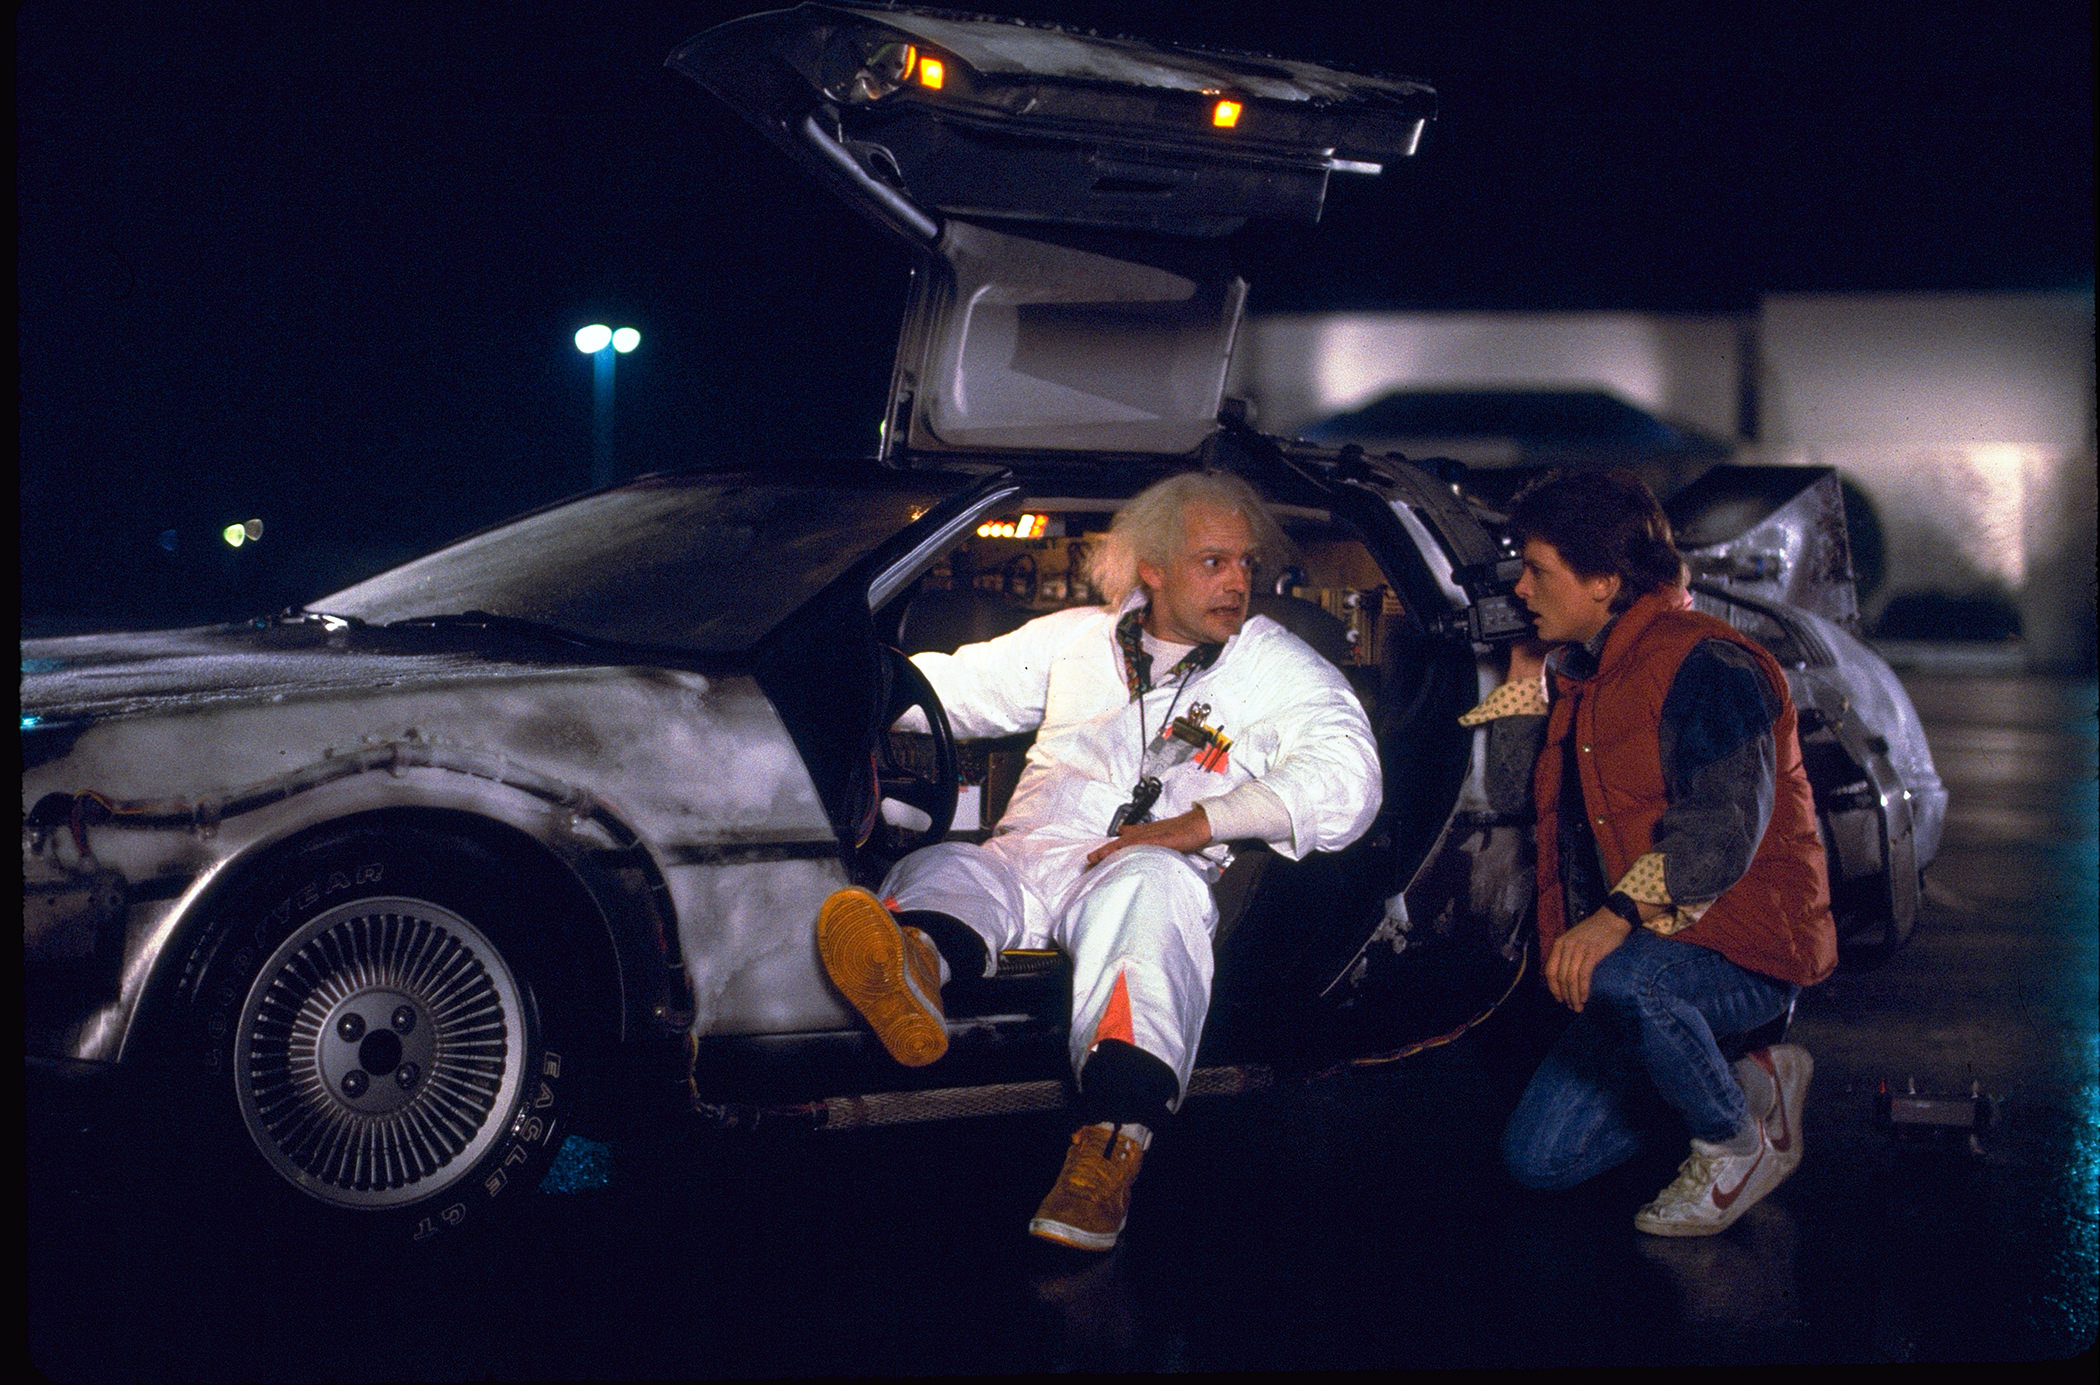 Delorean Dmc 12 The Essential Buying Guide 1983 Fuse Box Back To Future Was A Movie That Combined Enormous Vividness With Characters And Situations Audience Could Immediately Identify